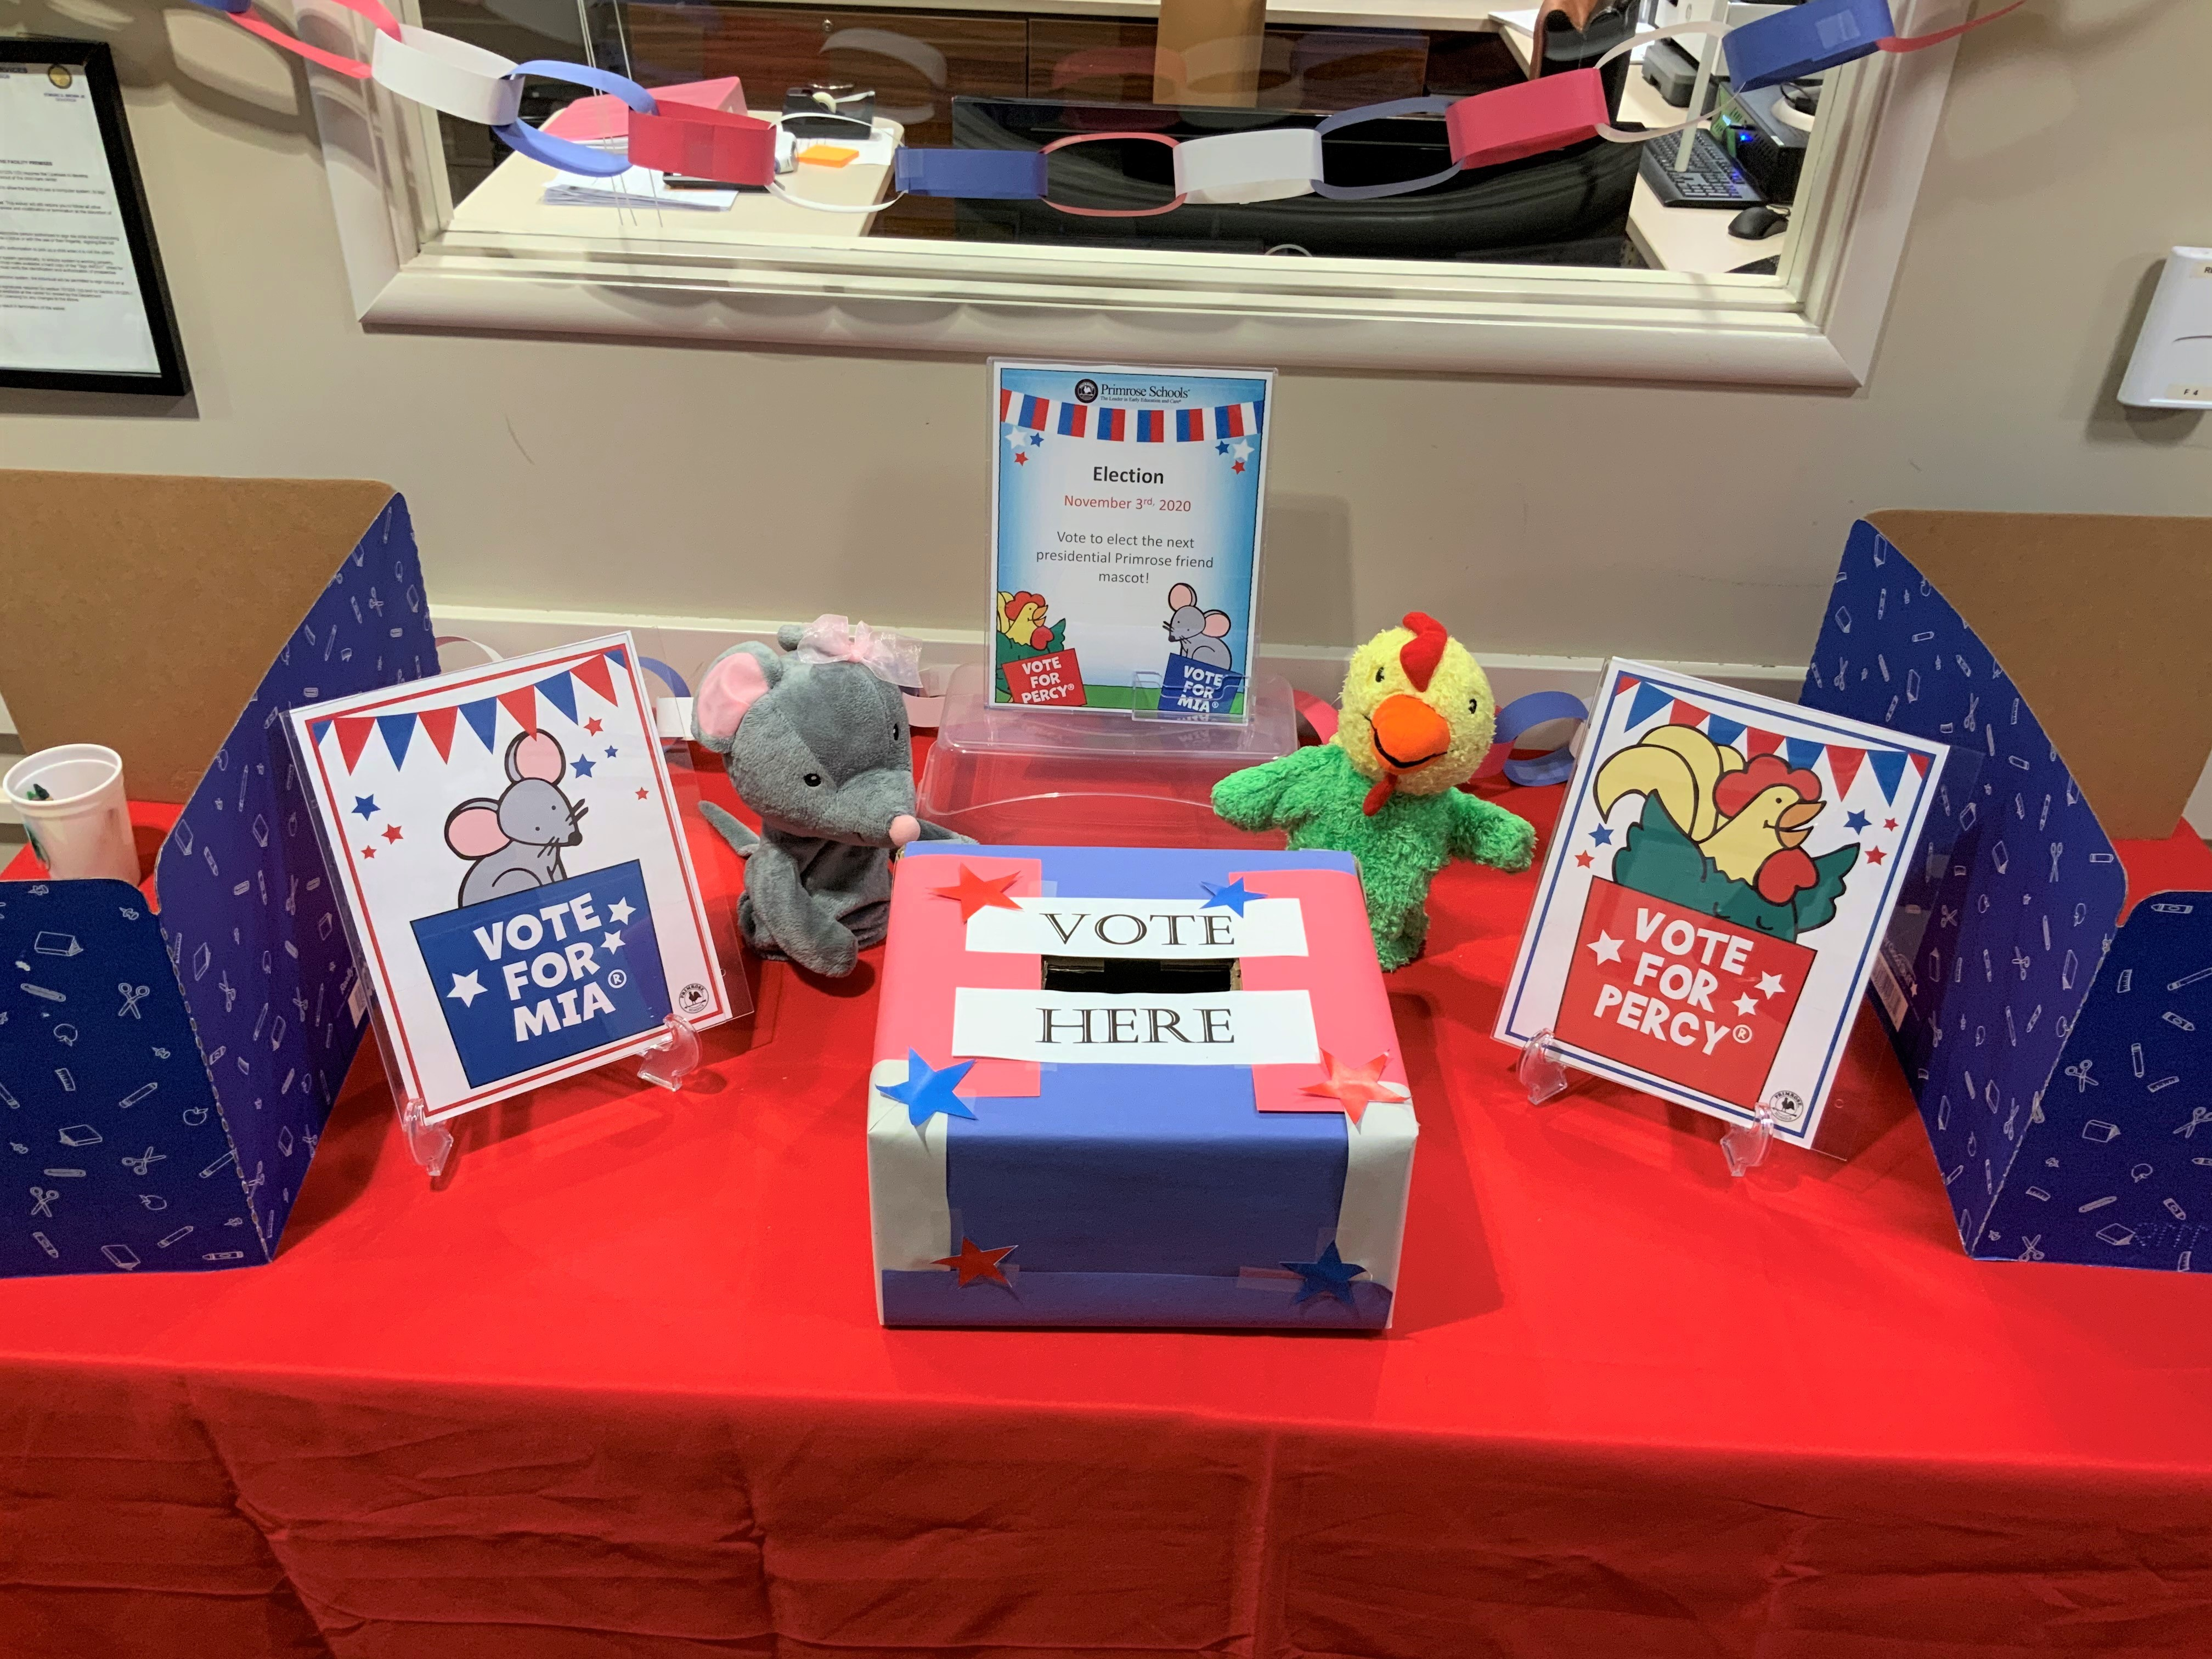 Voting booths with decorations and Percy the rooster and Mia the mouse puppets